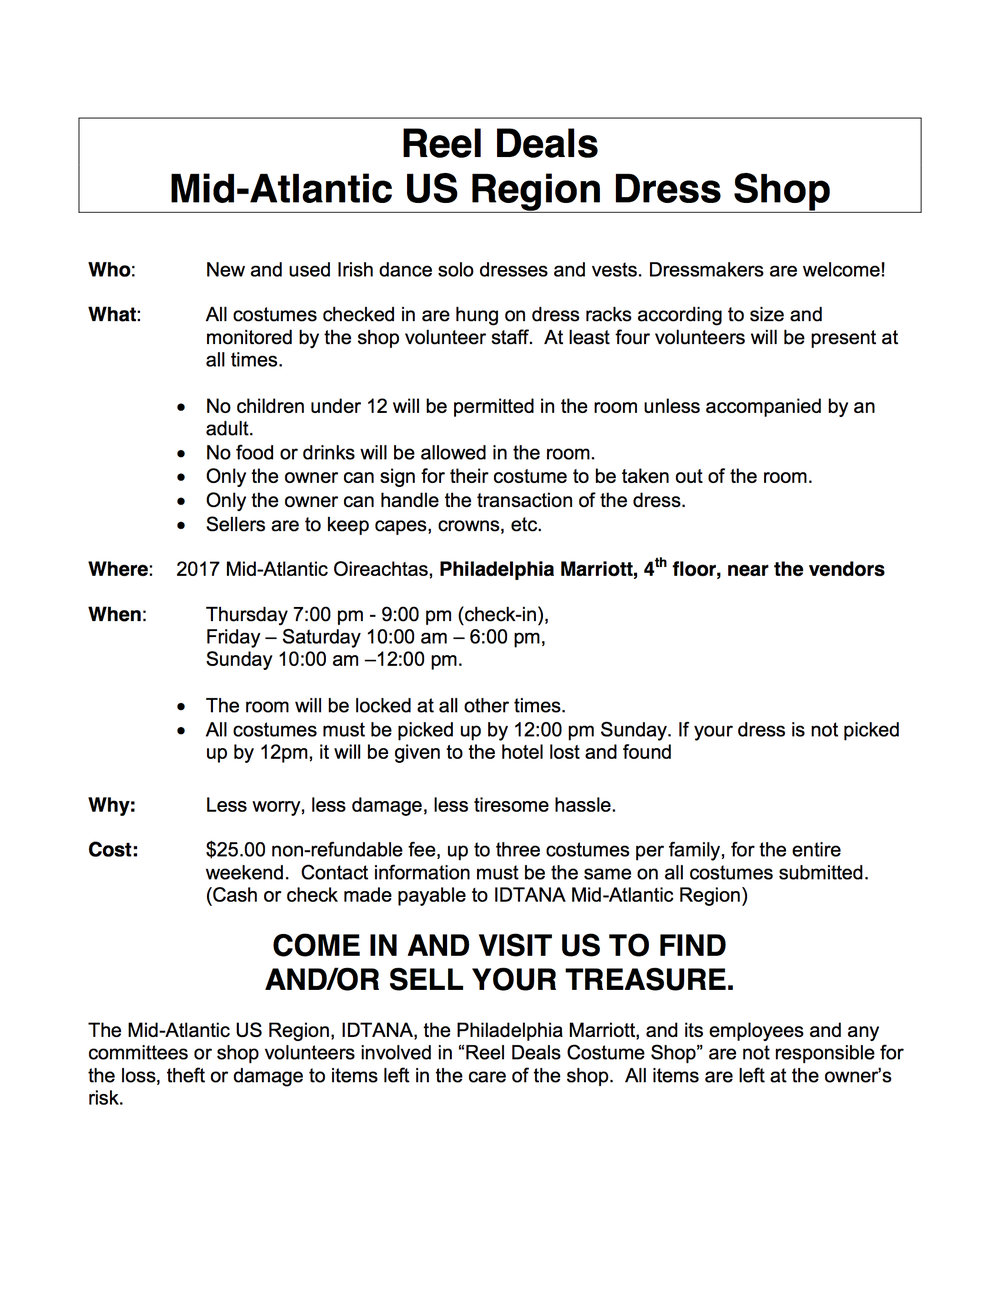 Click here for the Costume Information Form